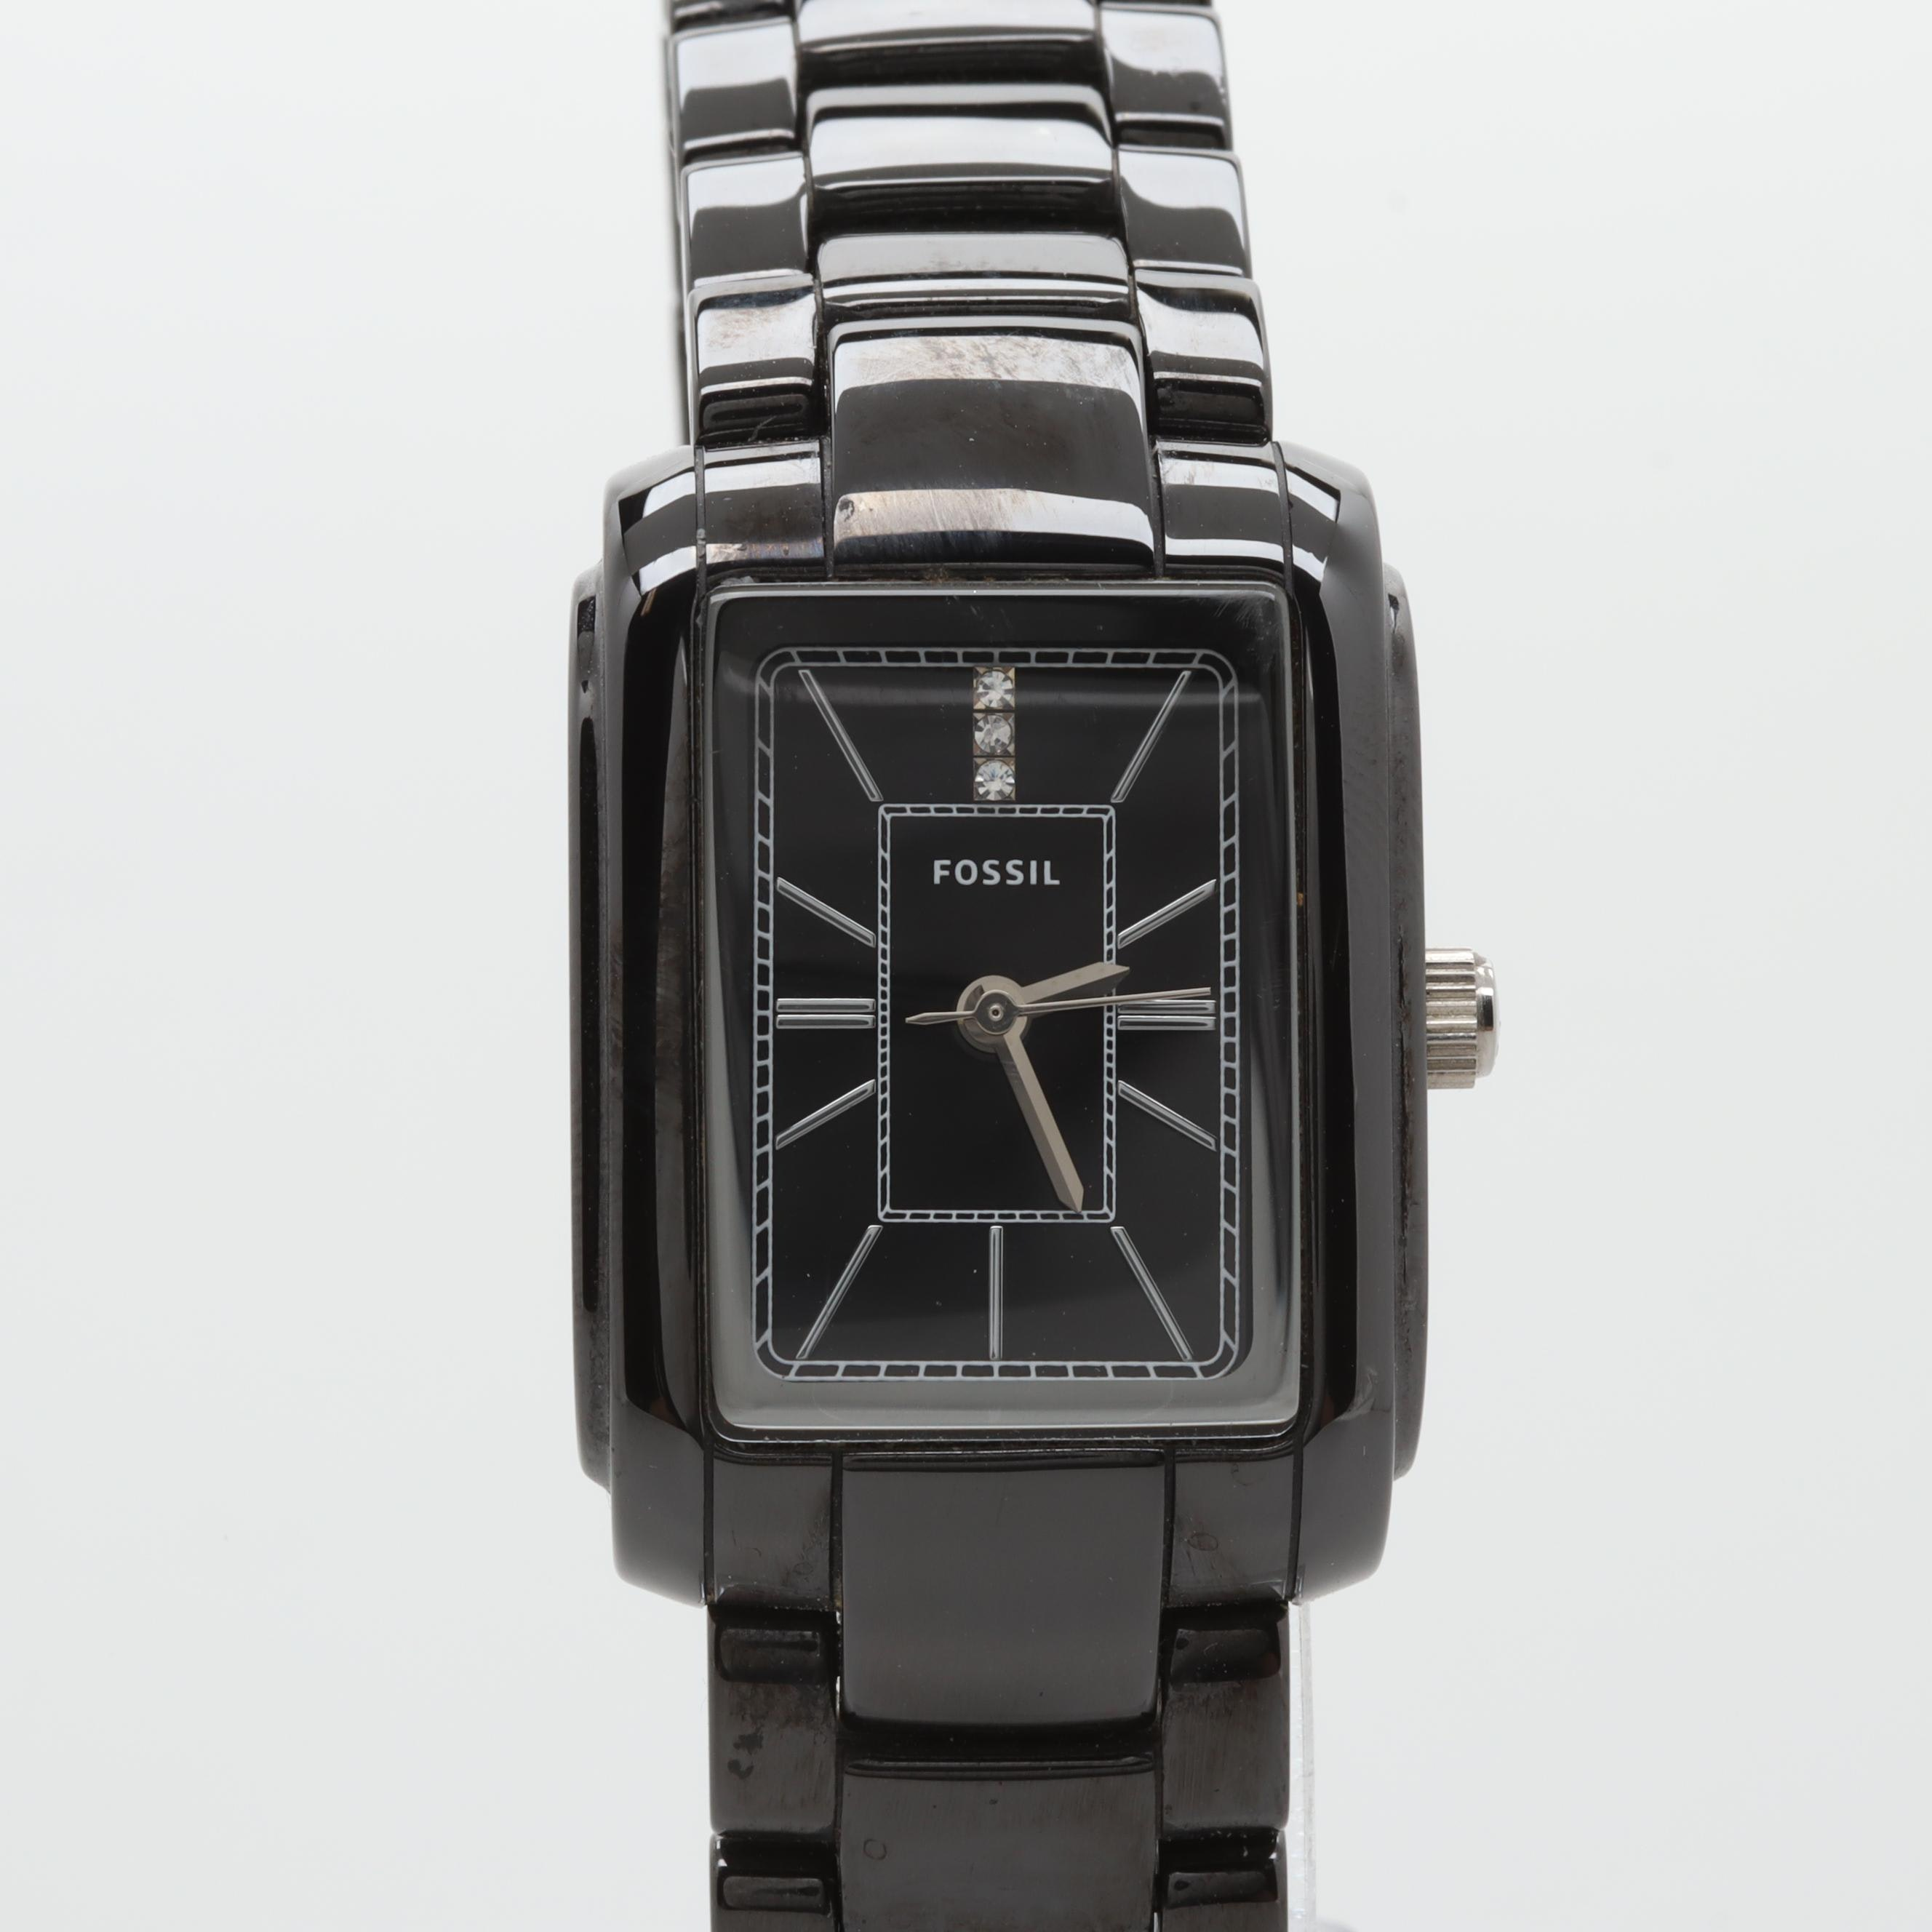 Fossil Black Ceramic and Stainless Steel Rectangular Wristwatch